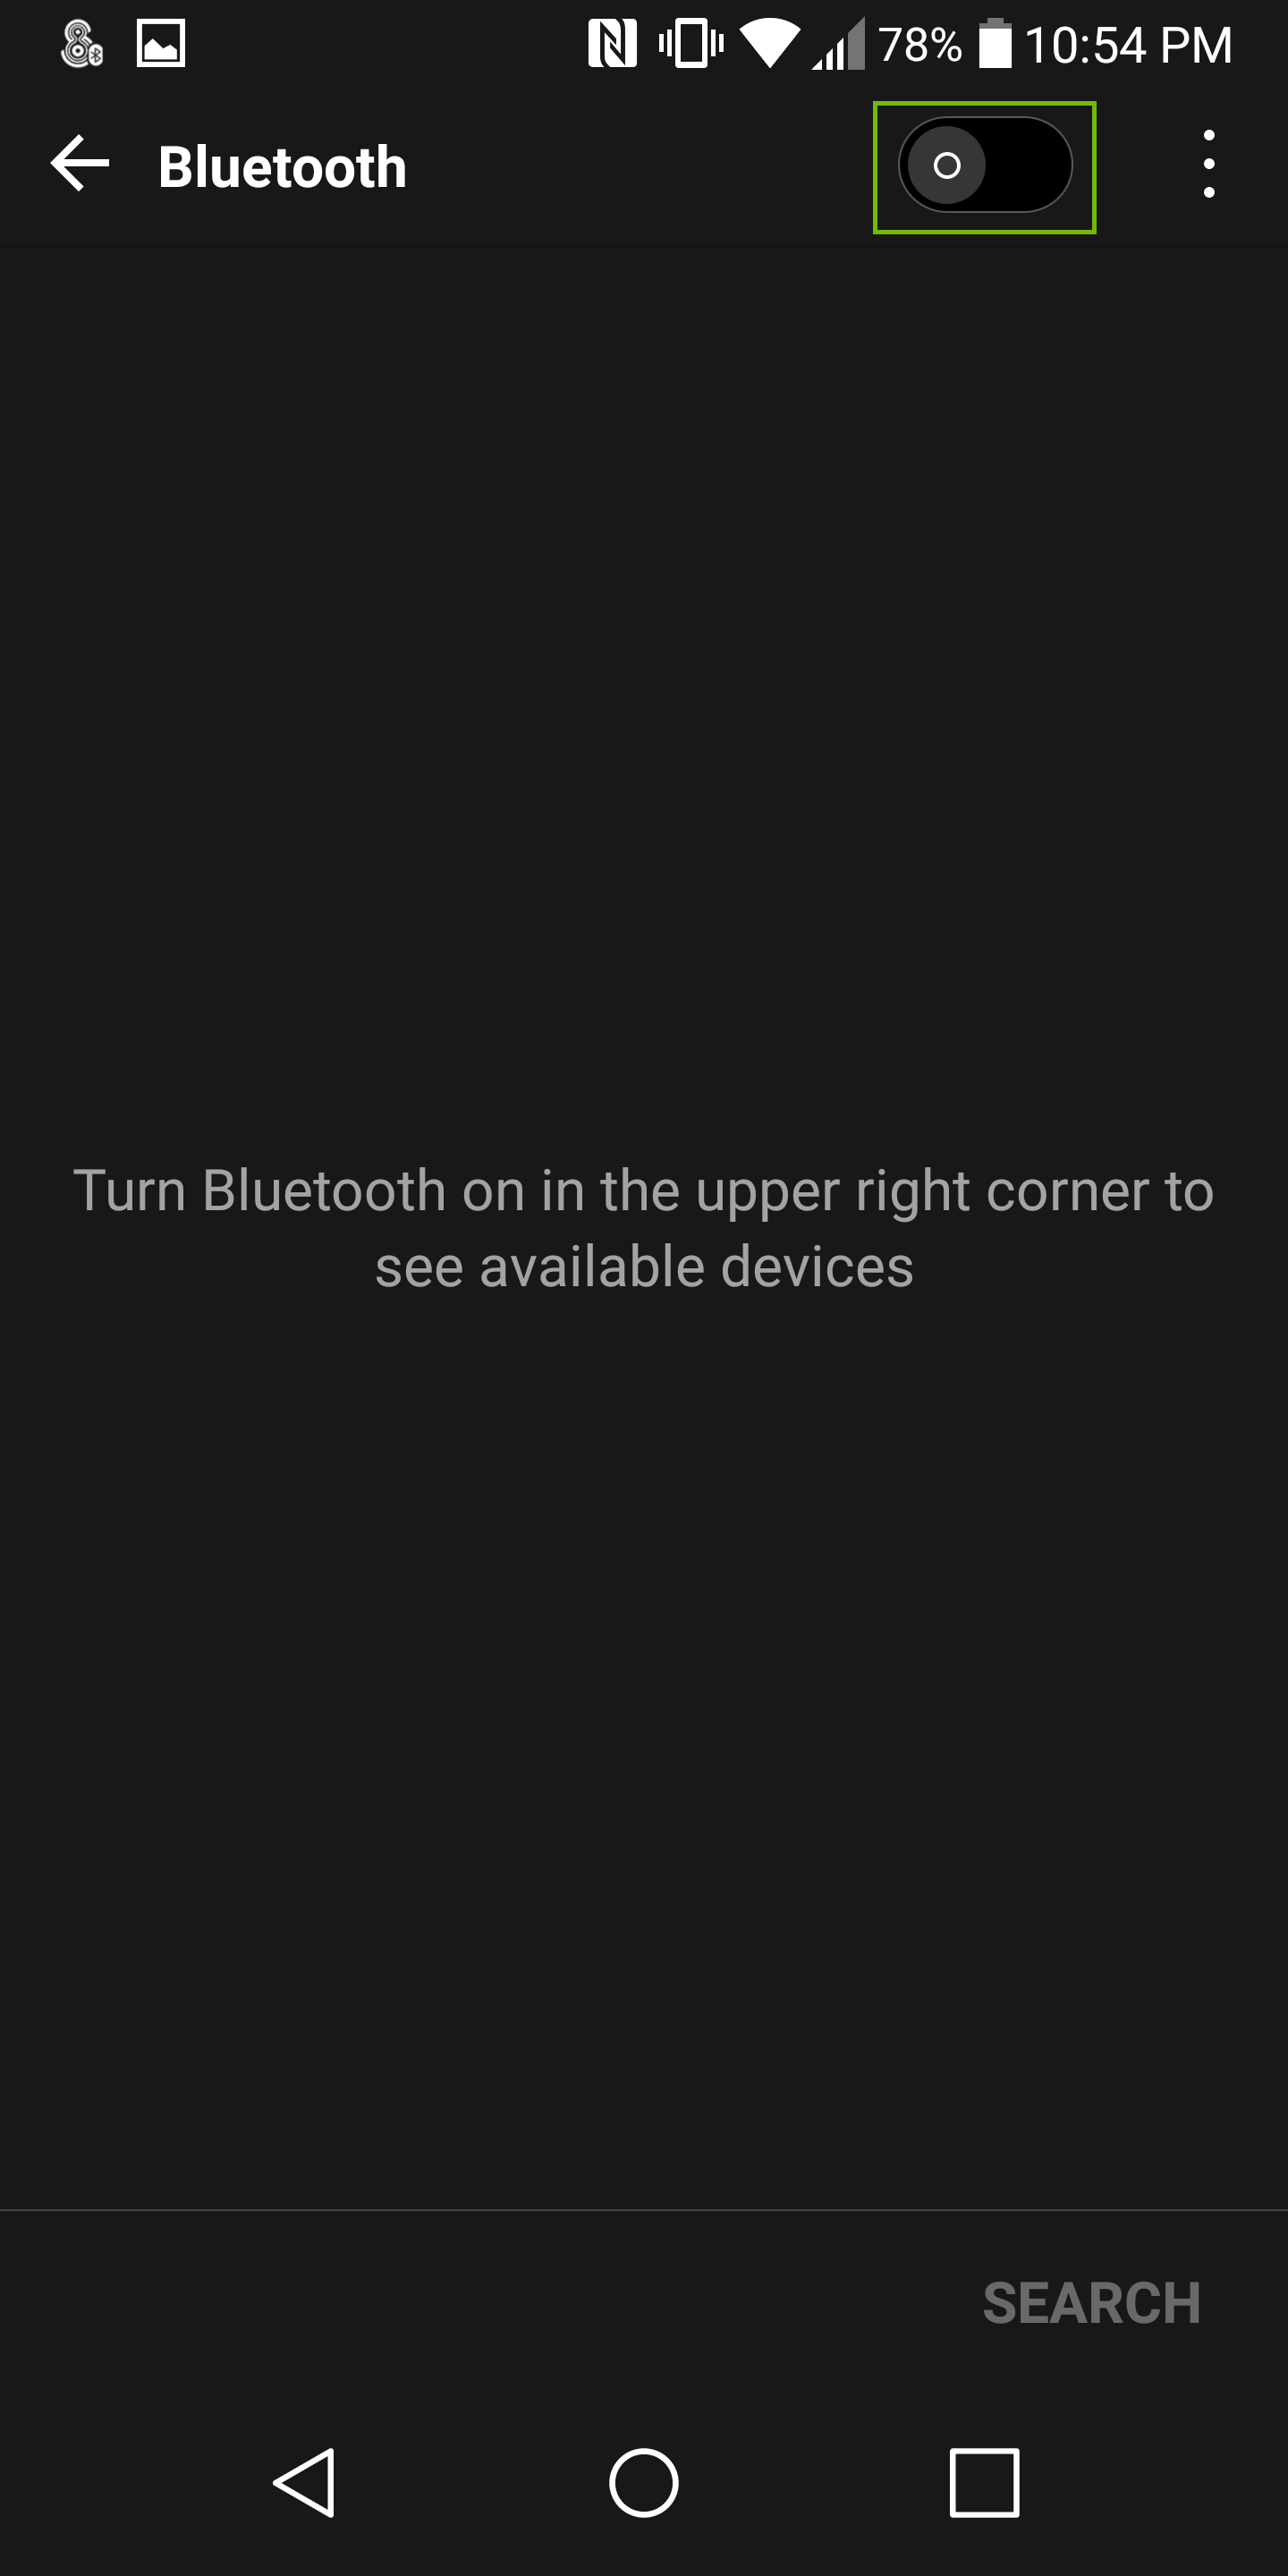 Android bluetooth options with on off switch highlighted